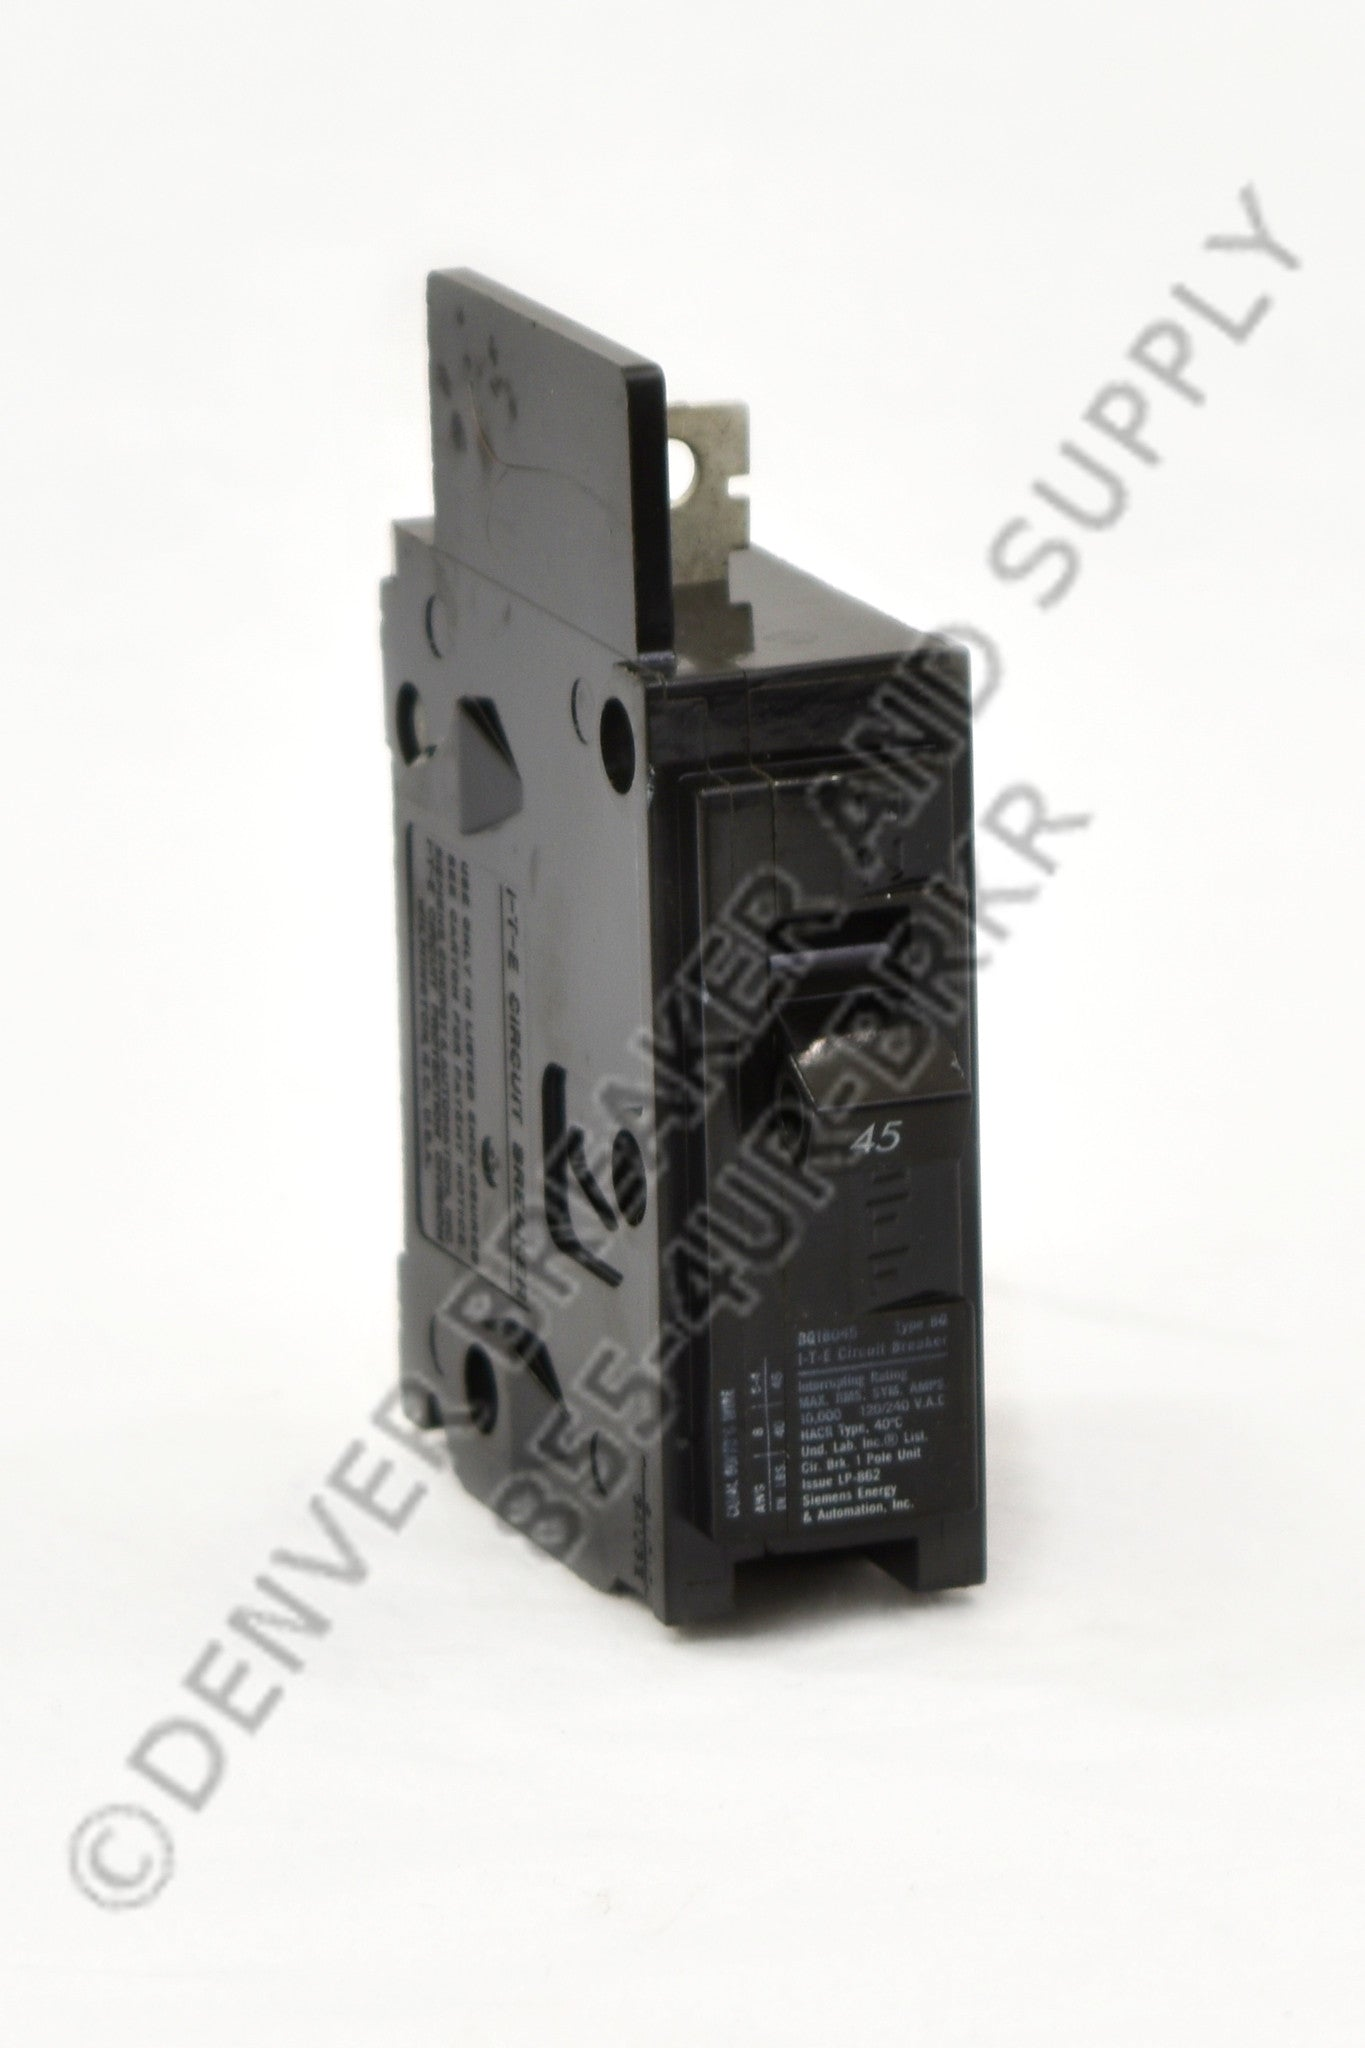 Siemens BQ1B04000S01 Circuit Breakers